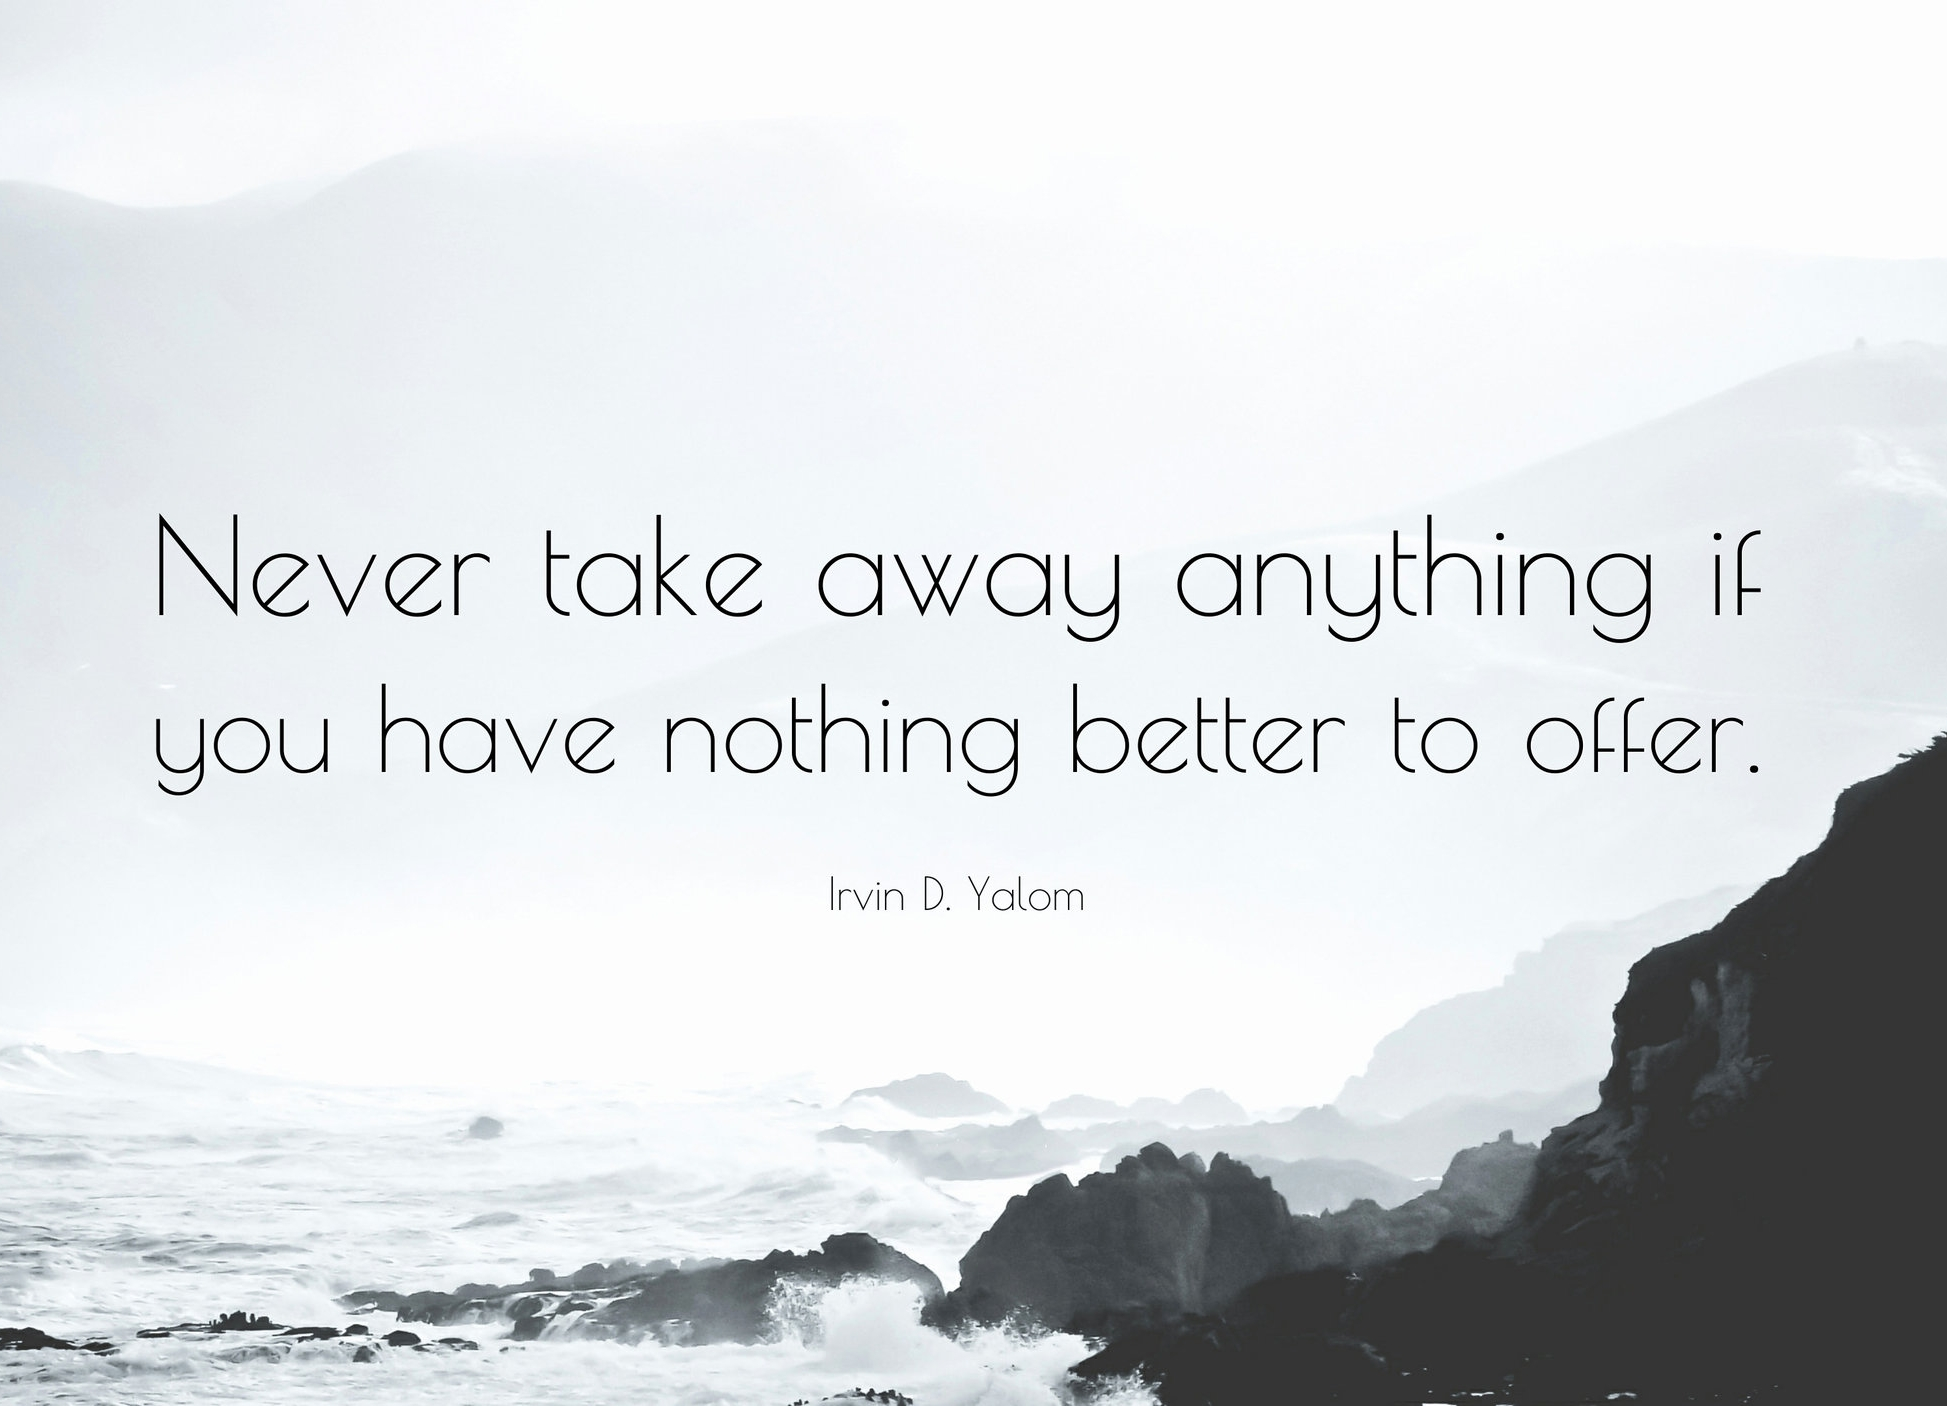 irvin-yalom-quotes-good-irvin-d-yalom-quotes-53-wallpapers-quotefancy-of-irvin-yalom-quotes.jpg